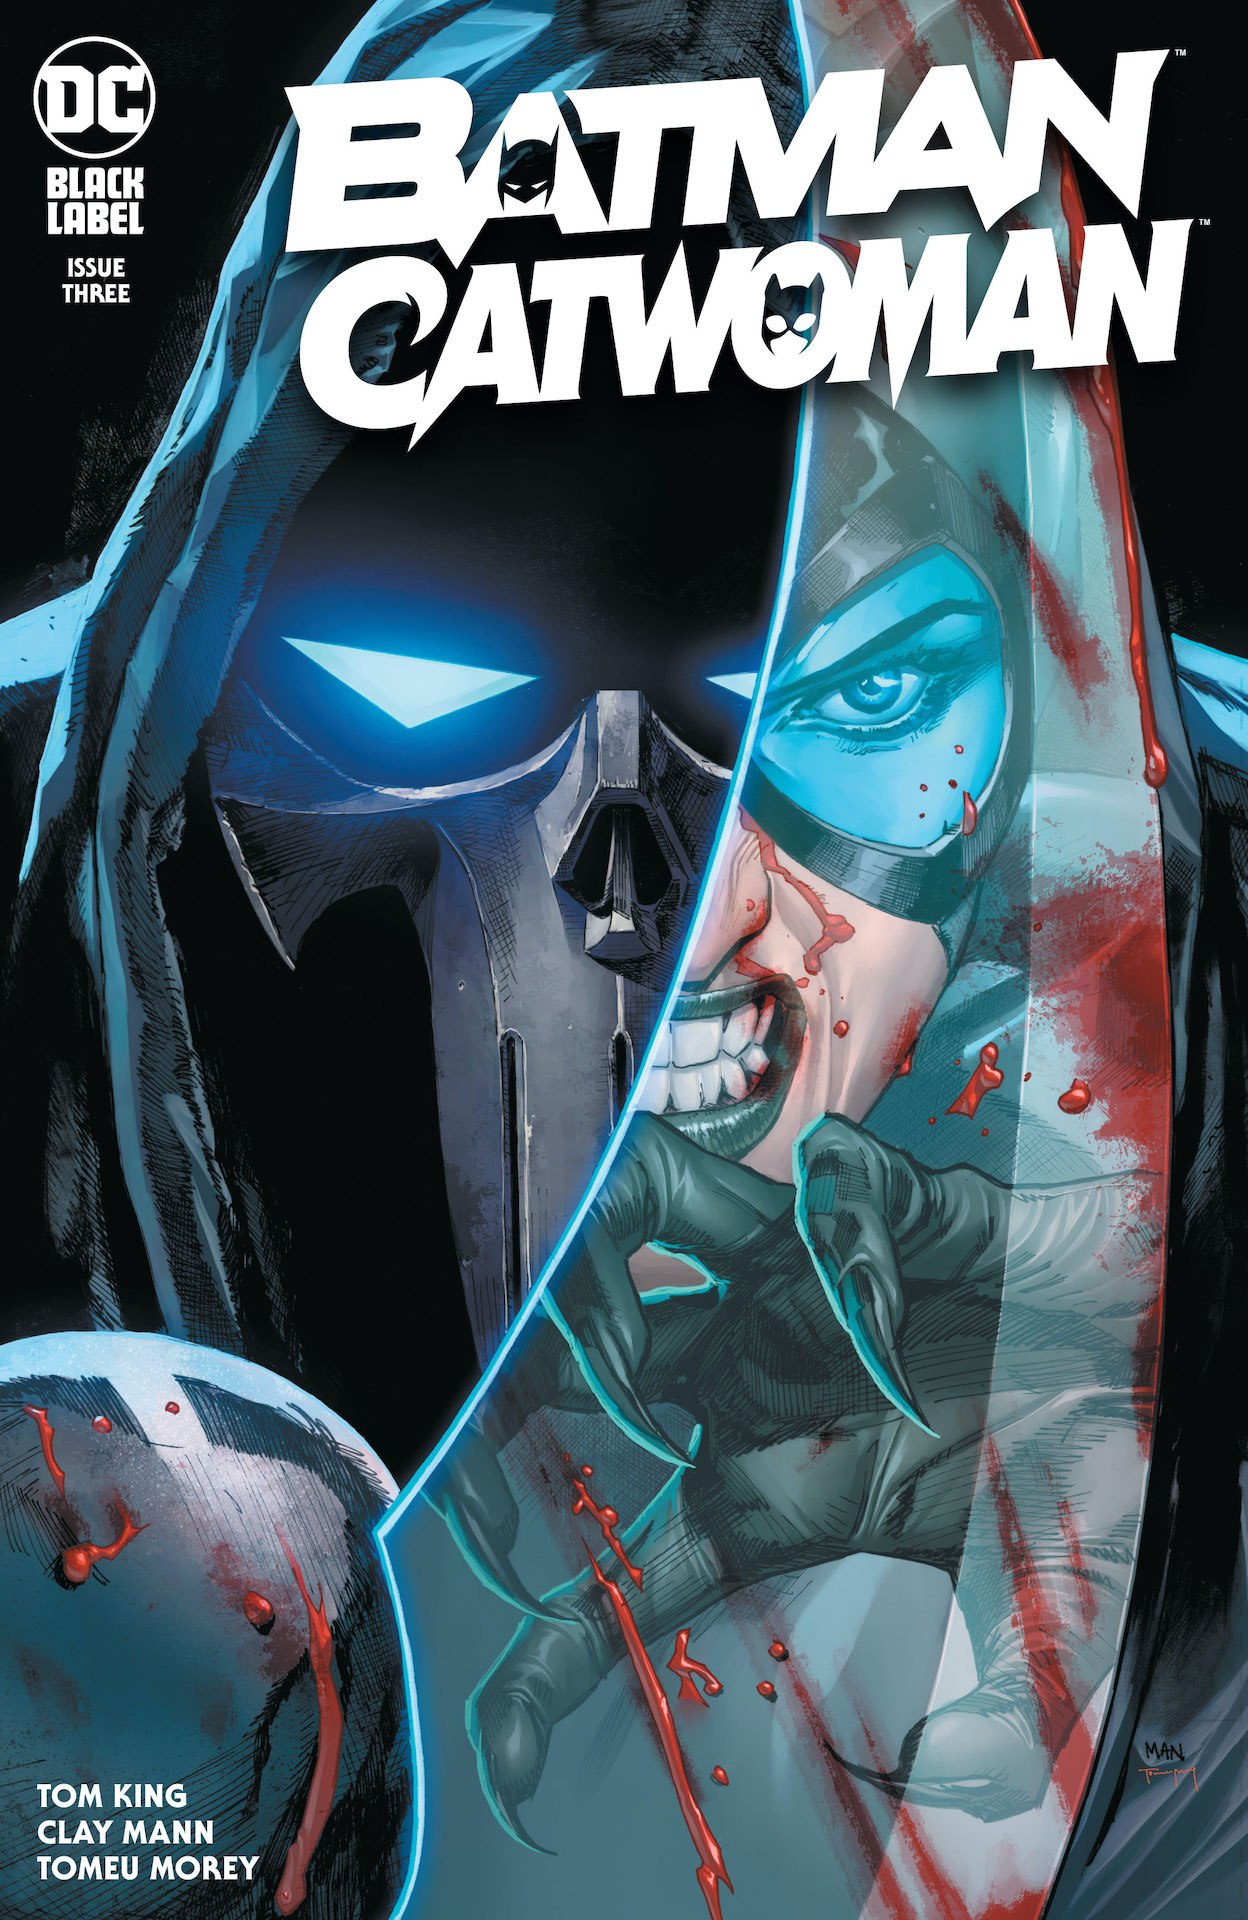 Batman/Catwoman #3 preview